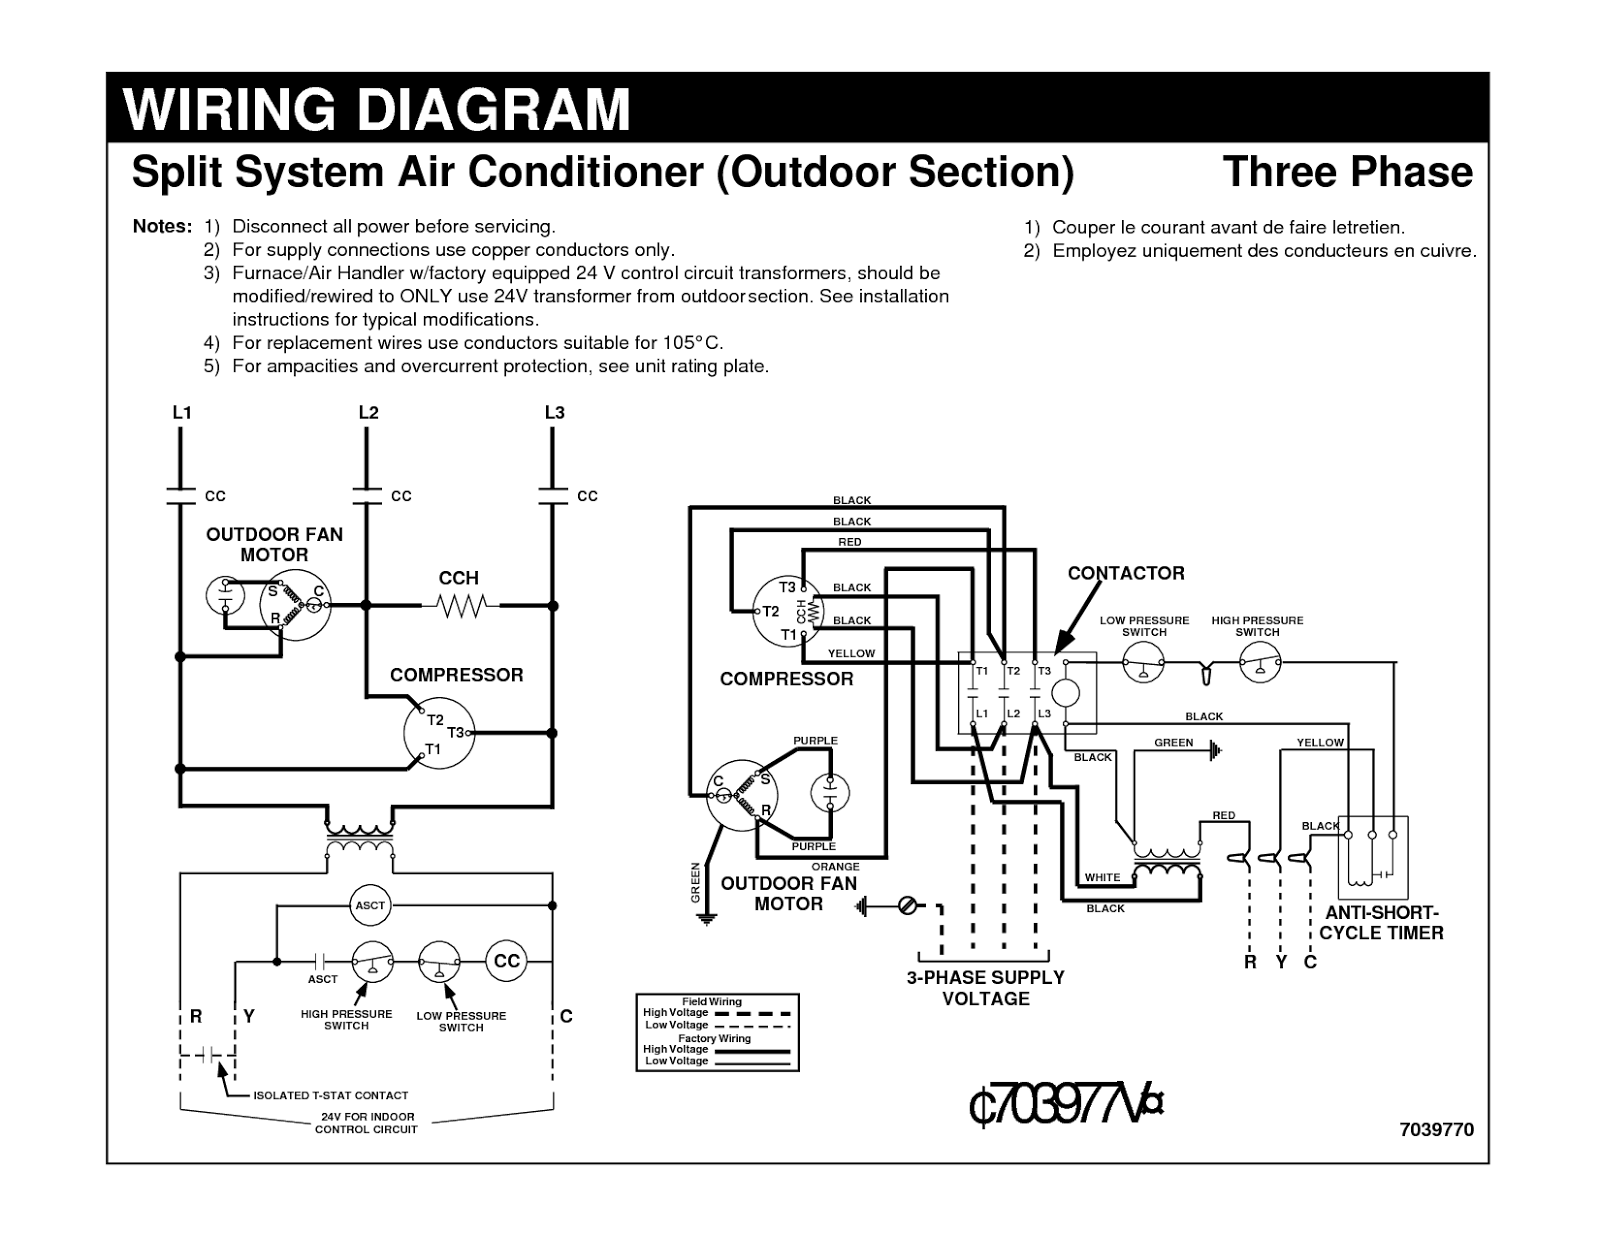 wiring+diagram+in+the+user+manual electrical wiring diagrams for air conditioning systems part one wiring diagram for dummies at eliteediting.co